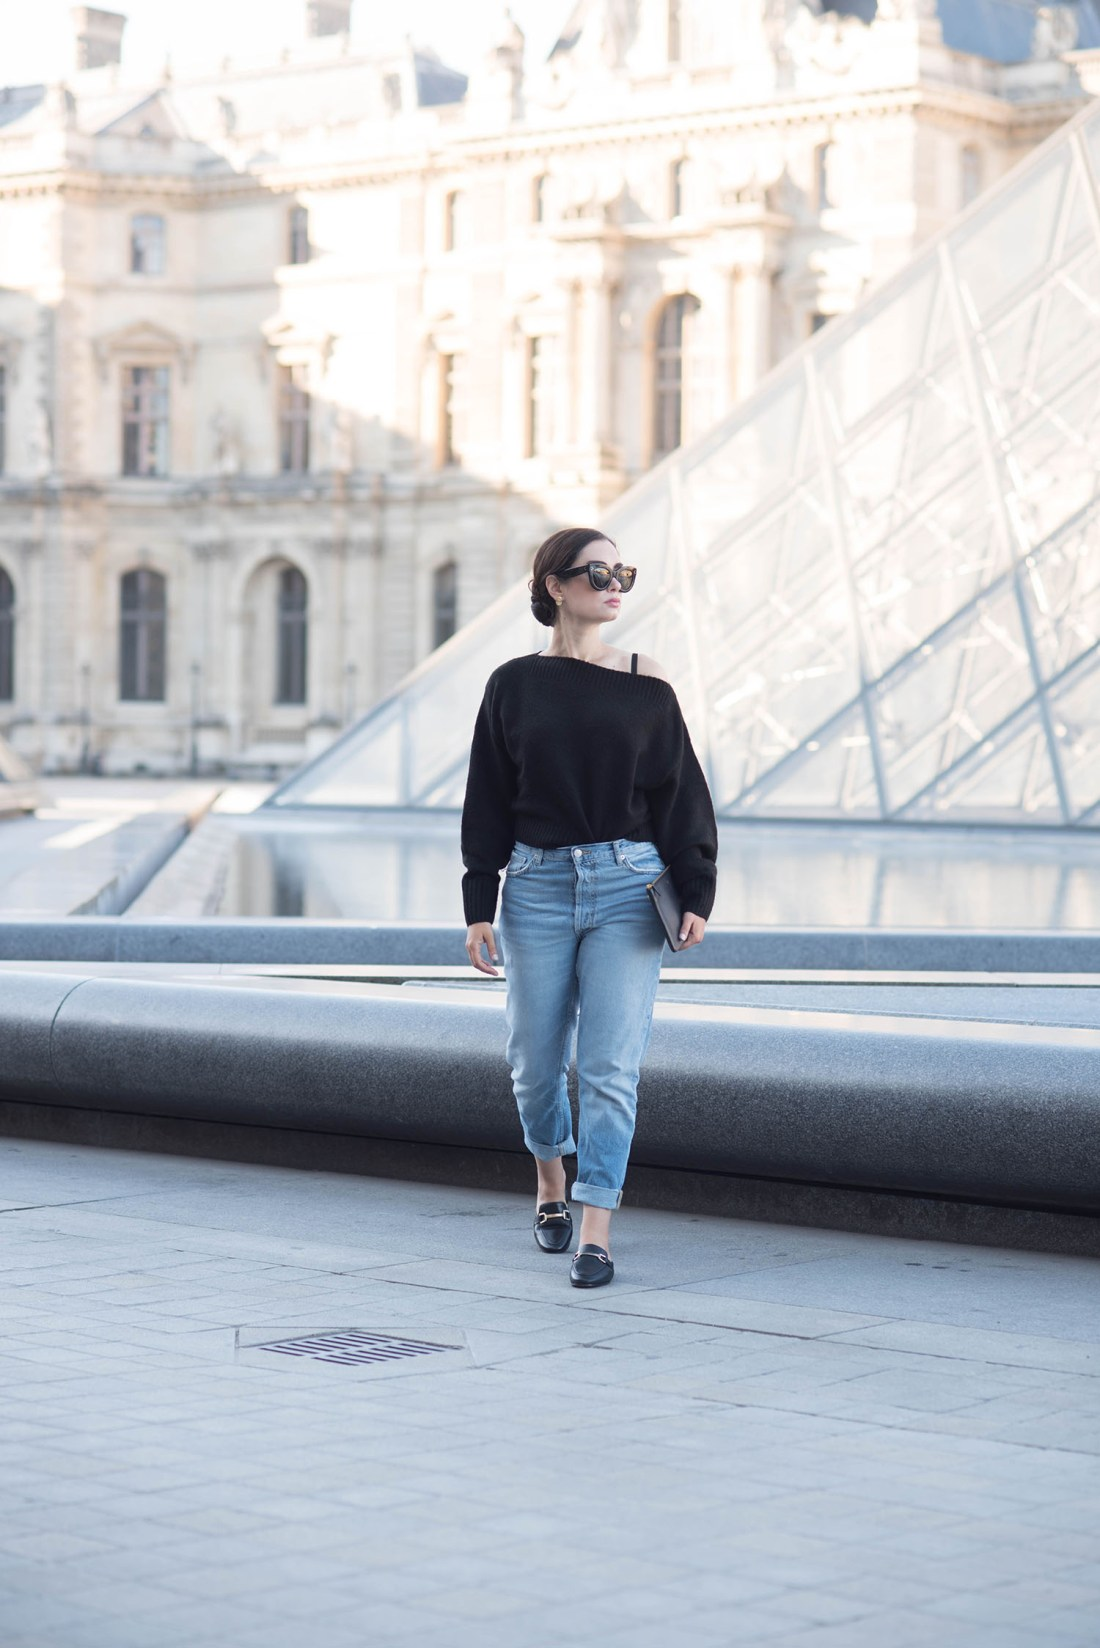 Fashion blogger Cee Fardoe of Coco & Vera walks in front of the Louvre pyramid wearing Zara boyfriend jeans and carrying a Celine clutch